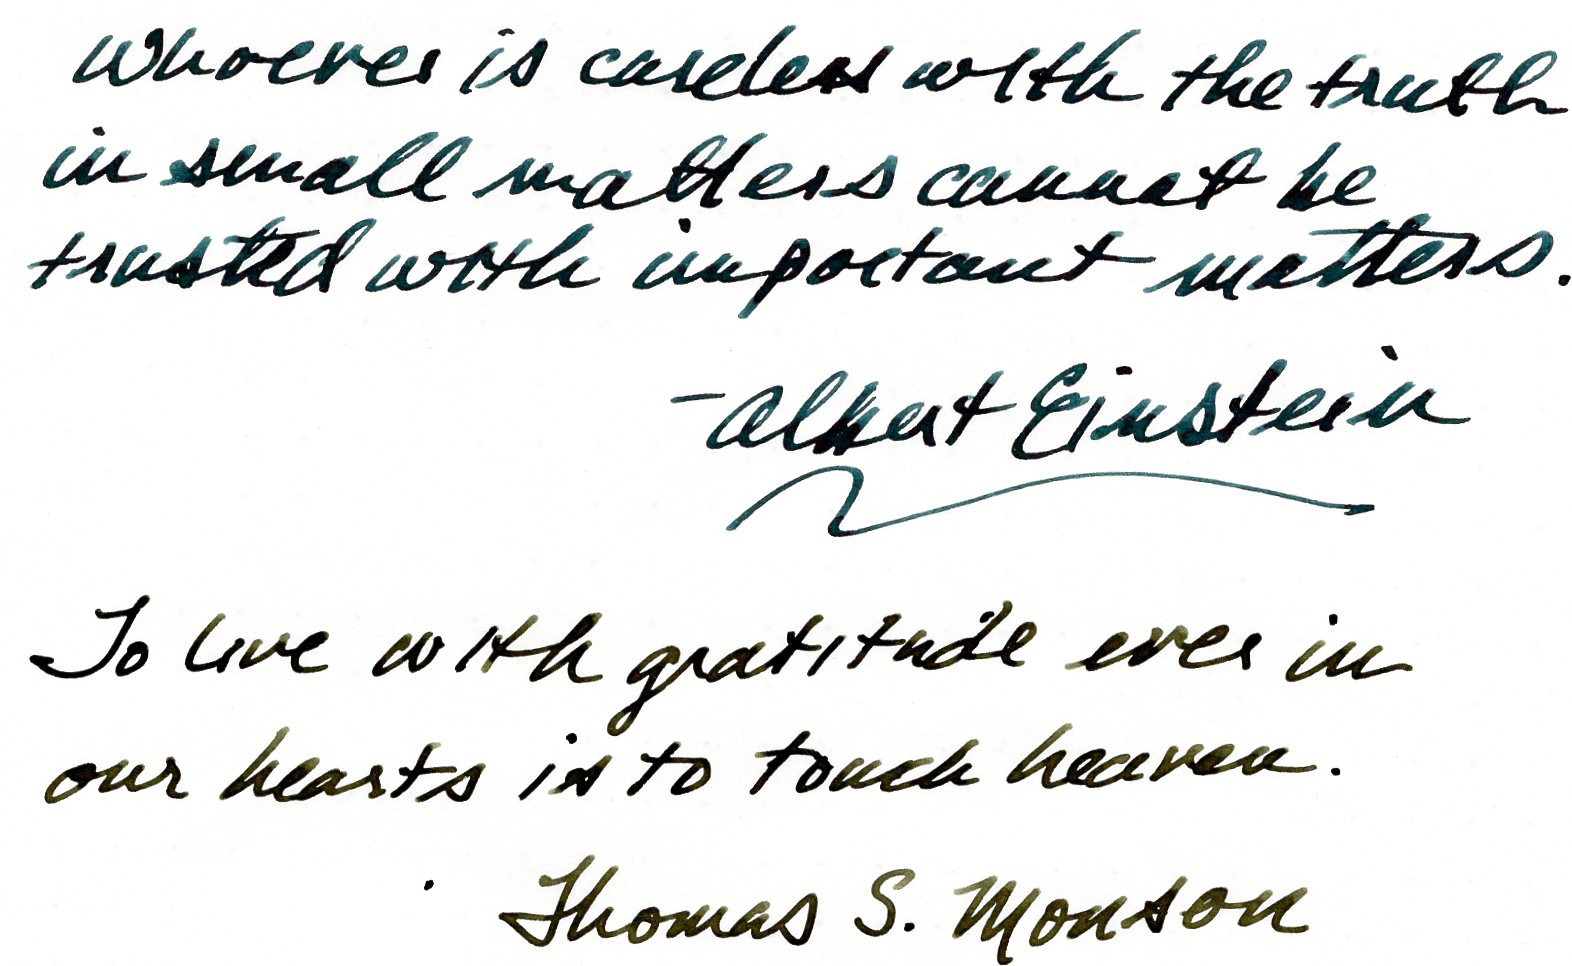 fpn_1516330340__gratitude_quote_thomas_s